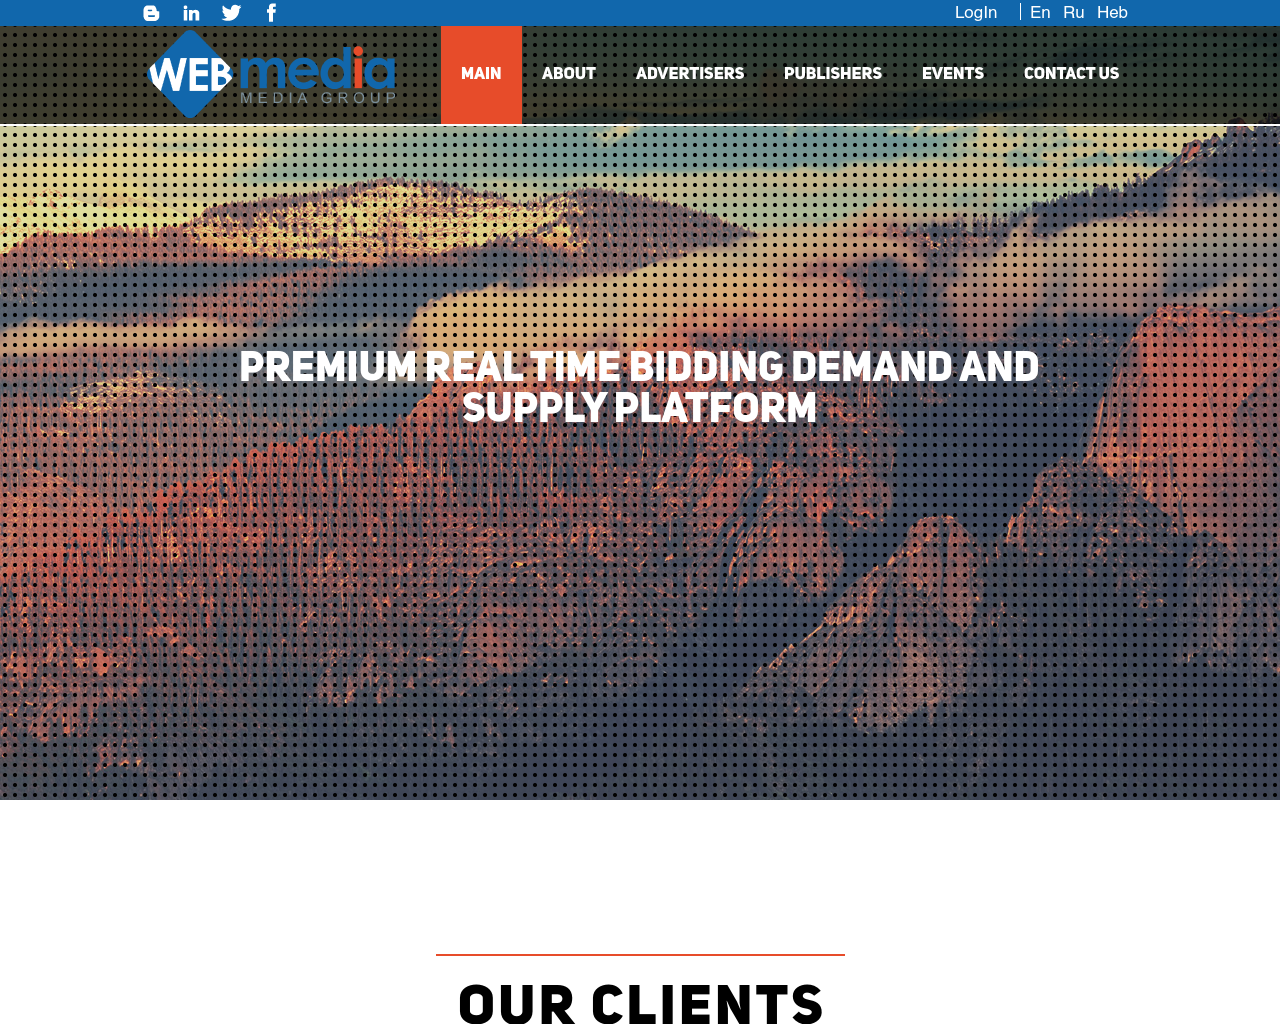 Webmedia-Media-Group-Advertising-Reviews-Pricing